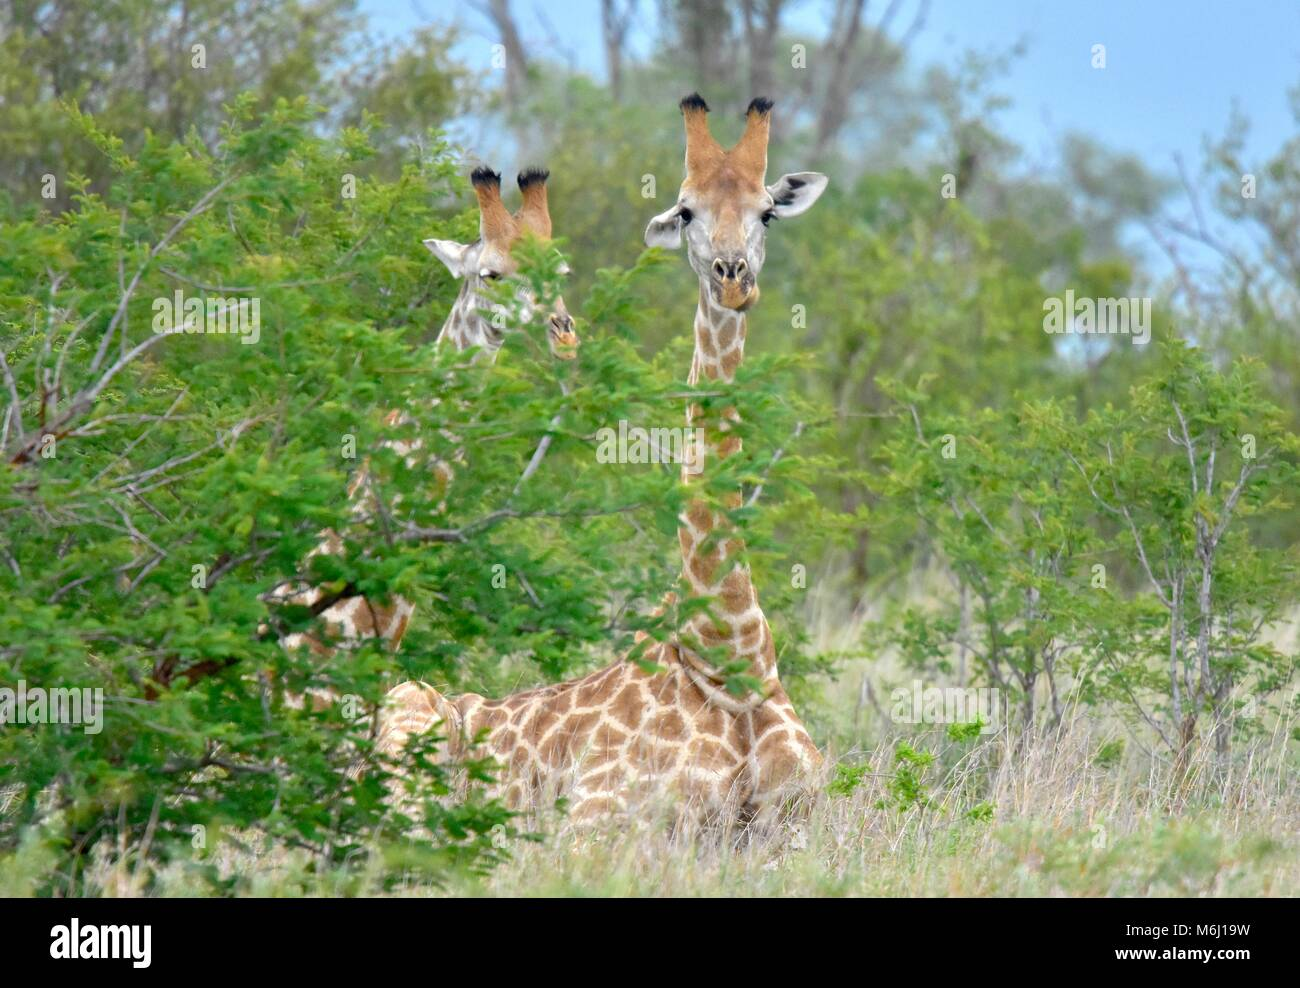 Kruger Park, South Africa. A wildlife and bird paradise. Giraffe resting on ground. - Stock Image